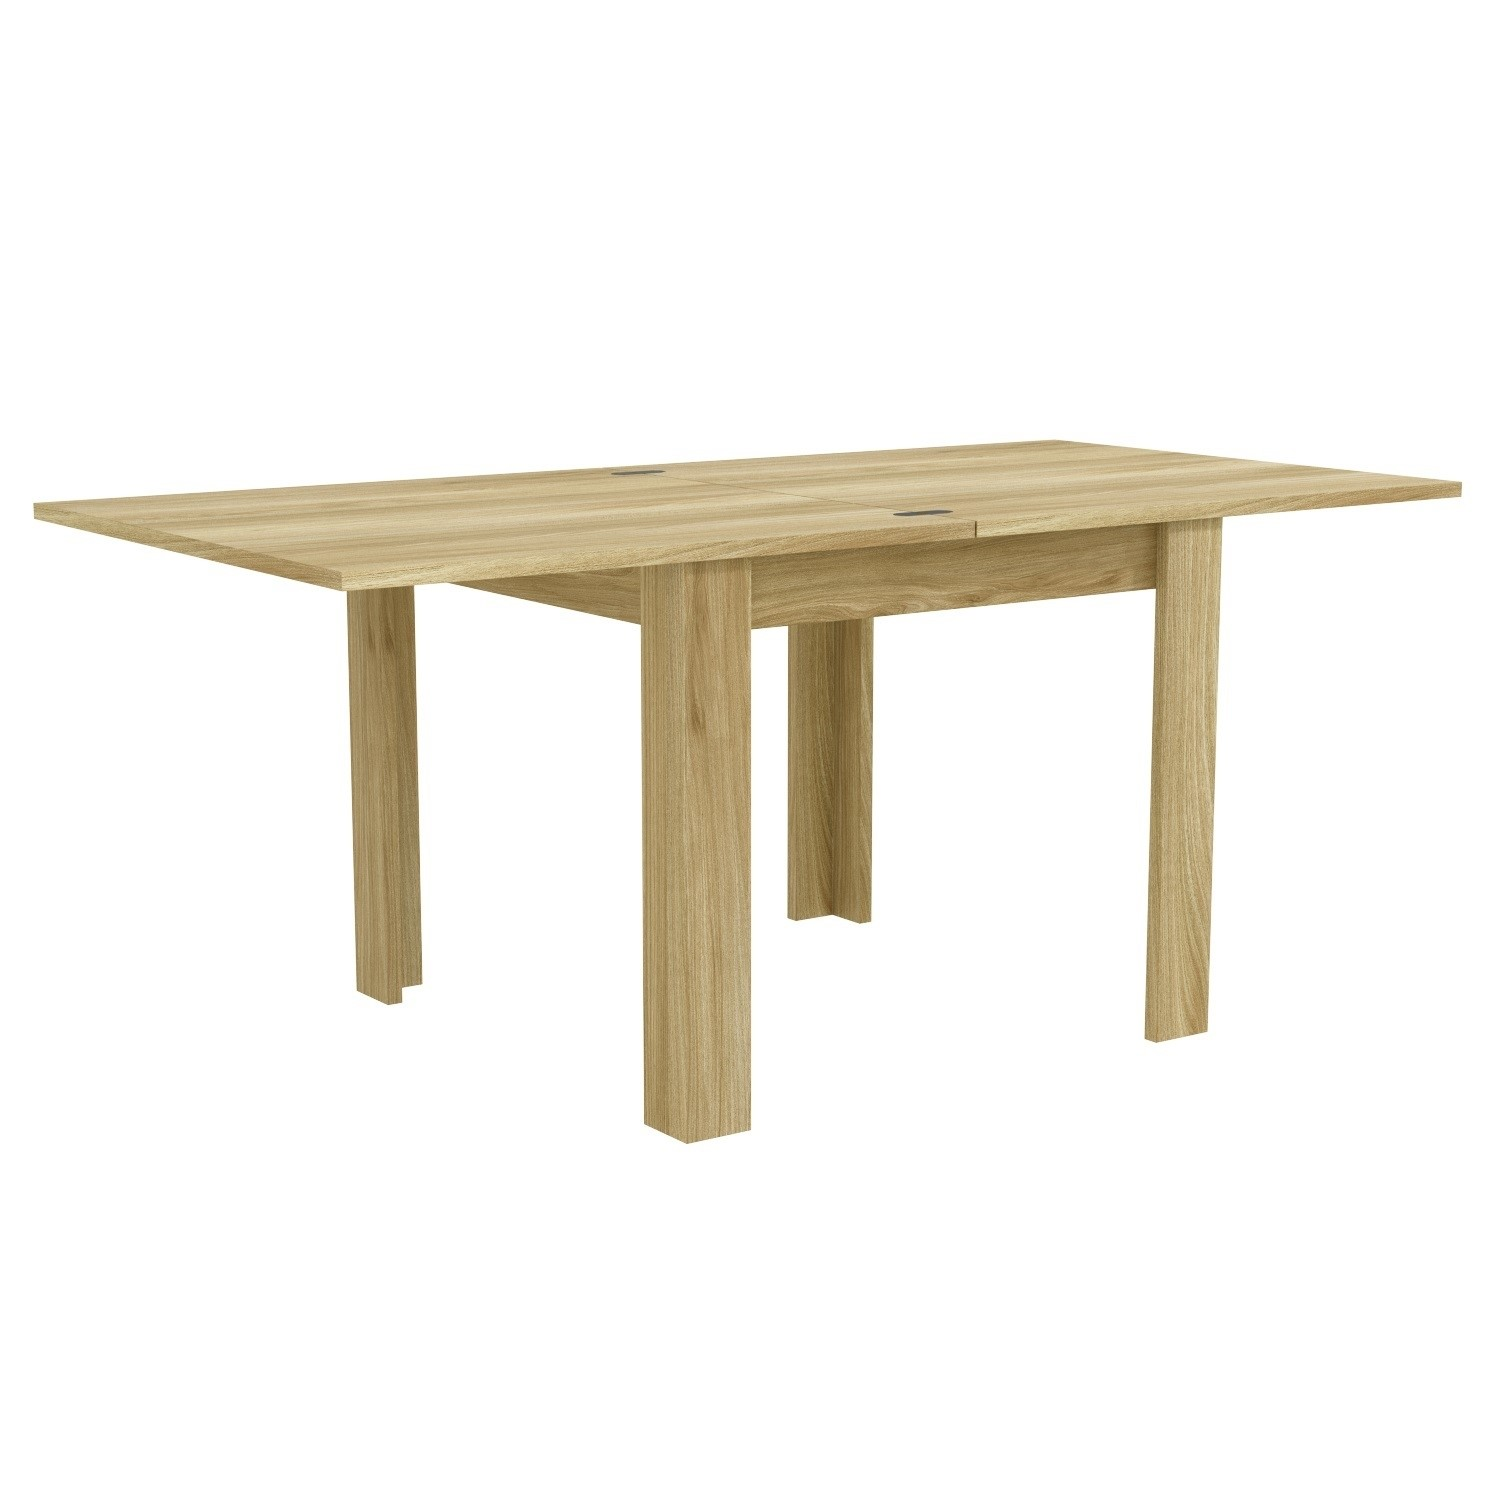 Picture of: New Town Flip Top Oak 4 Seater Dining Table Home Kitchen Dining Room Furniture